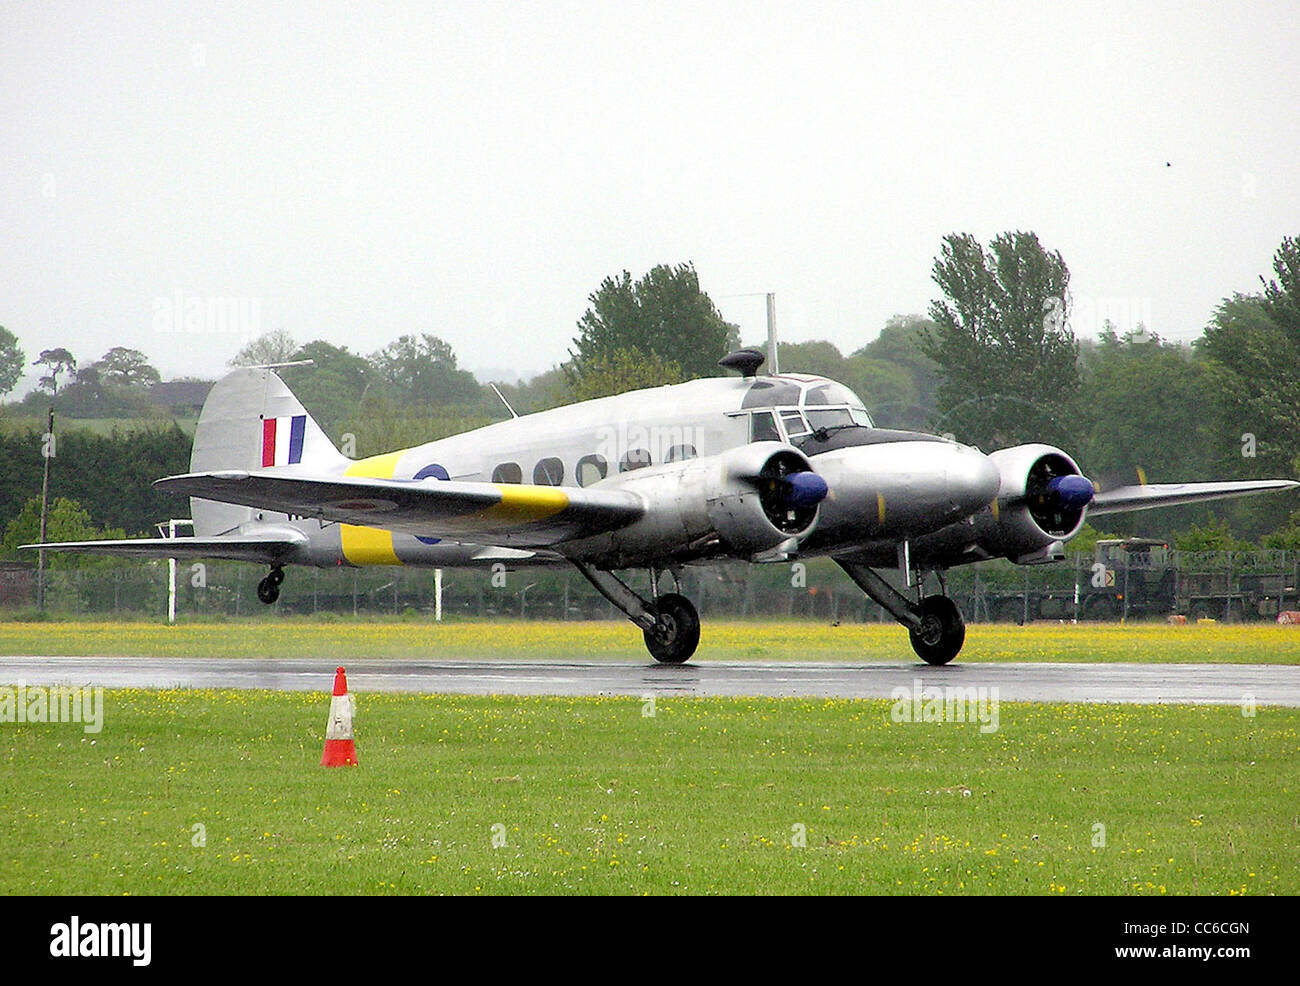 Avro 652a Anson T.21 (military designation WD413, private registration G-VROE) of the Air Atlantique Historic Flight - Stock Image